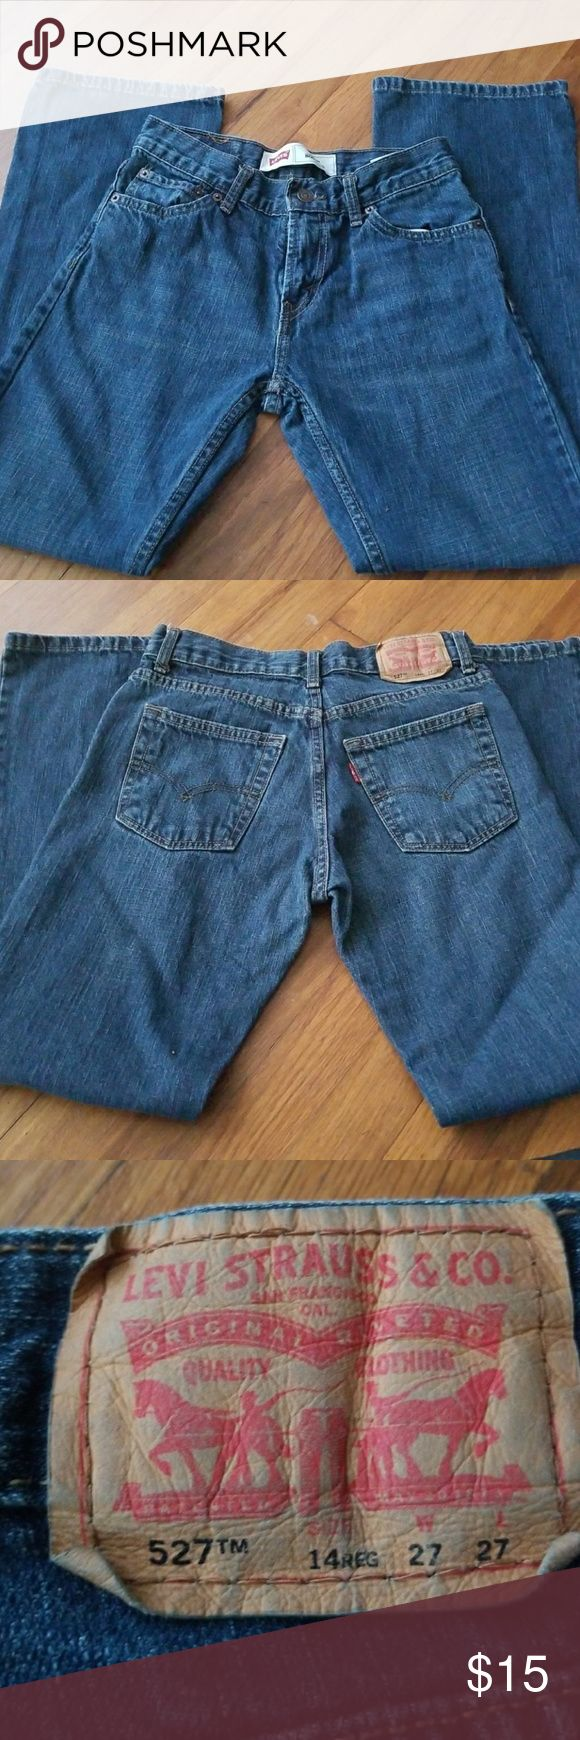 Levi' s Boy's or Teen jeans Levi's 527 jeans. Size 14 regular or 27x27. Older boy or Teen jeans. In very gently used condition. My son grew 3 inches in 2 months, and I don't think he ever actually wore these. They DO NOT have an adjustable waist. No holes, tears, stains, etc.  Need more jeans in this size? I have others listed and will make you an AWESOME deal for more than one pair! Kust bundle the pairs you want and I will send you a private discounted offer! Levi's Bottoms Jeans